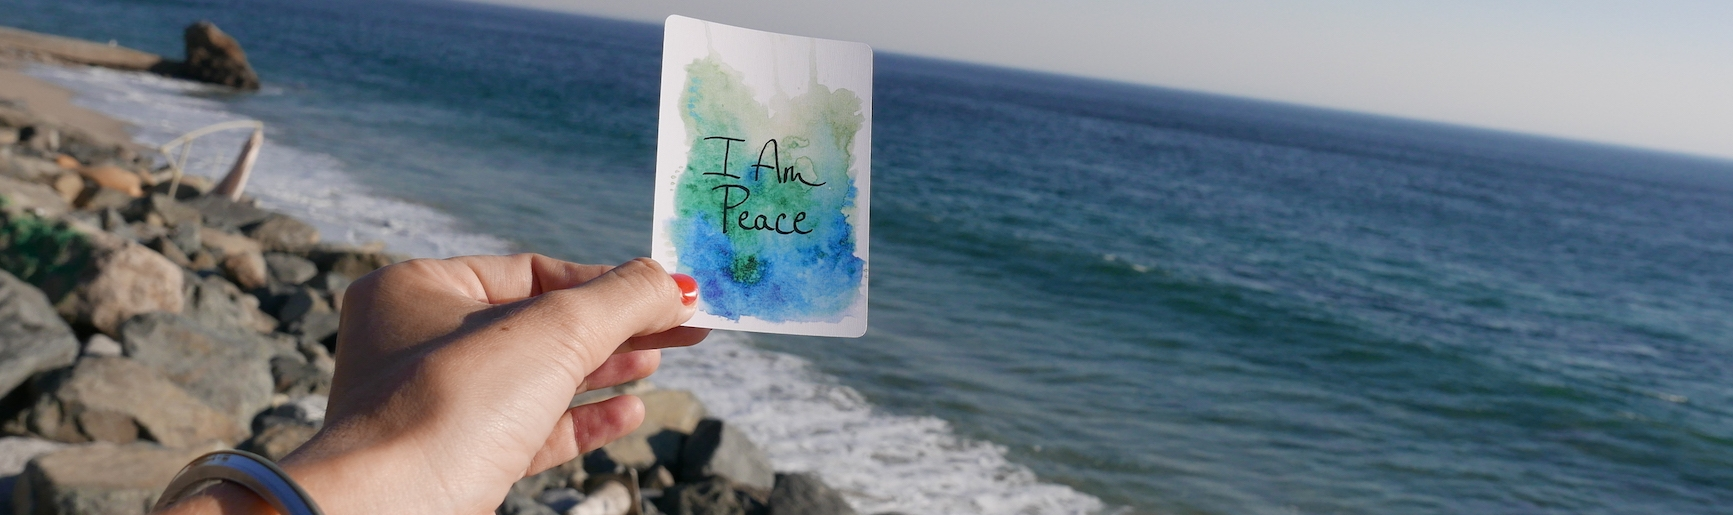 Healing Your Heart Coaching - Finding peace from within.